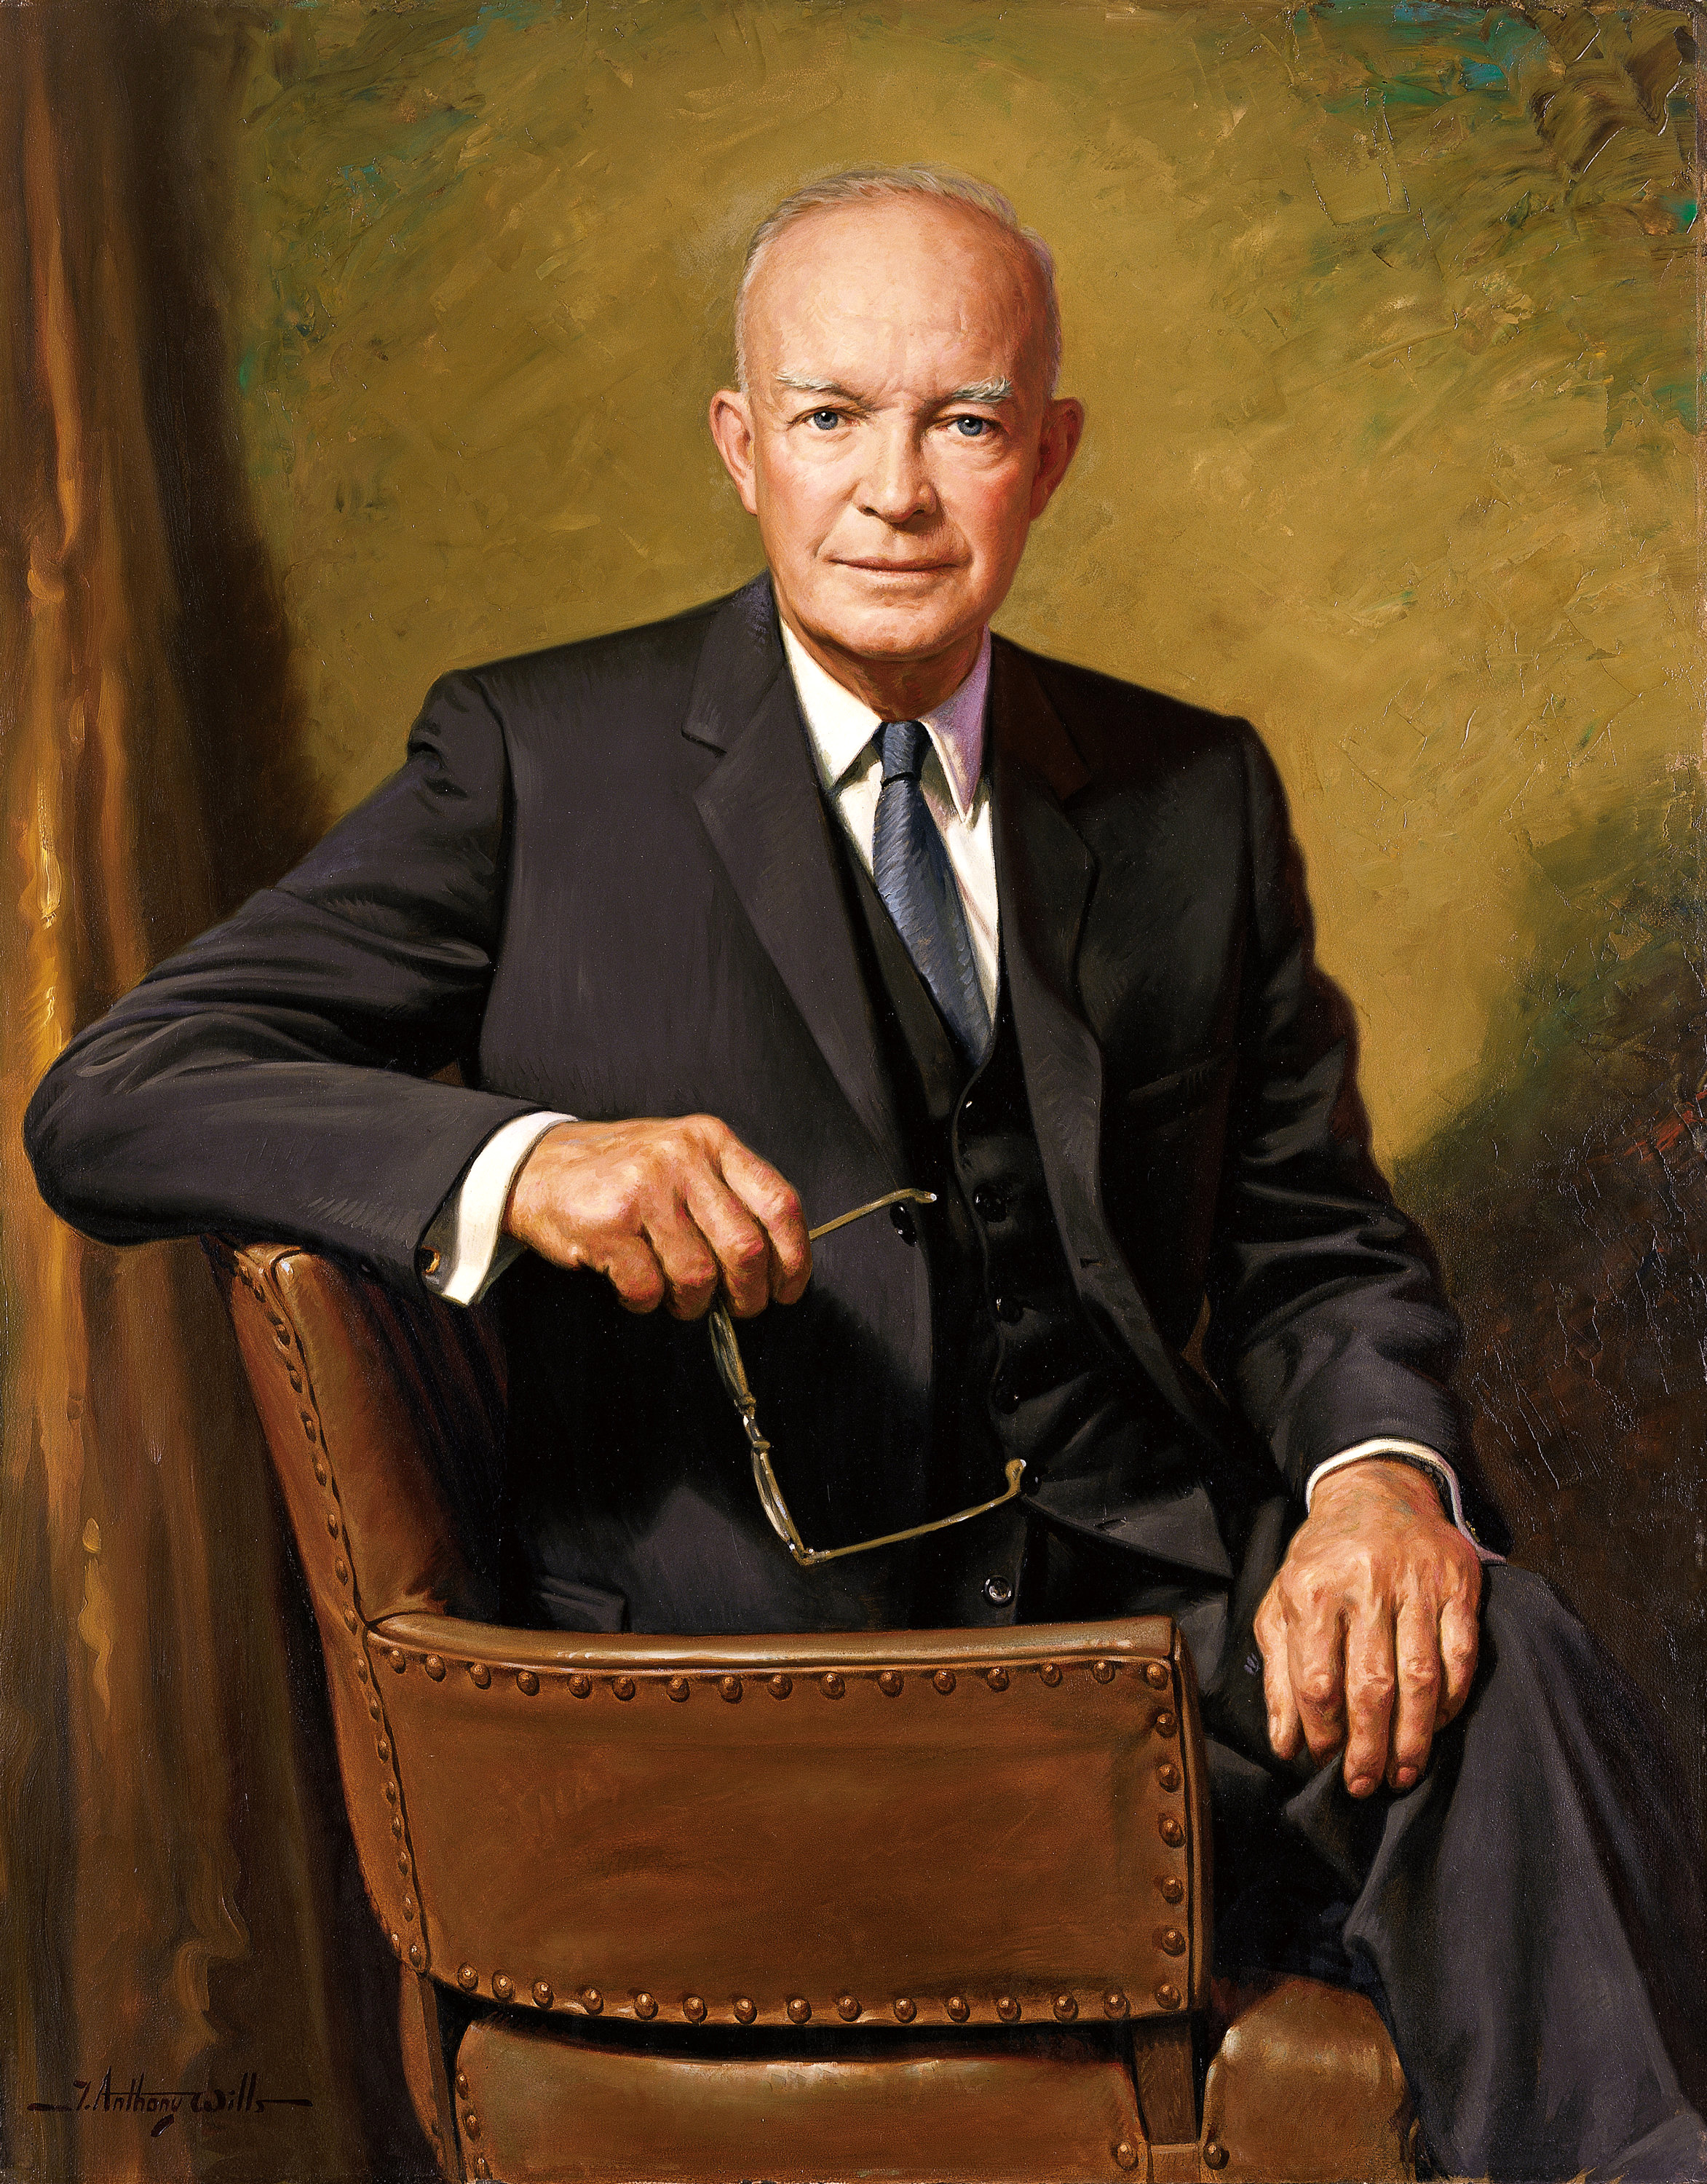 a biography of dwight david eisenhower Born in denison, texas, on october 14, 1890, dwight david eisenhower grew up in abilene, kansas, as the third of seven sons in a poor family.